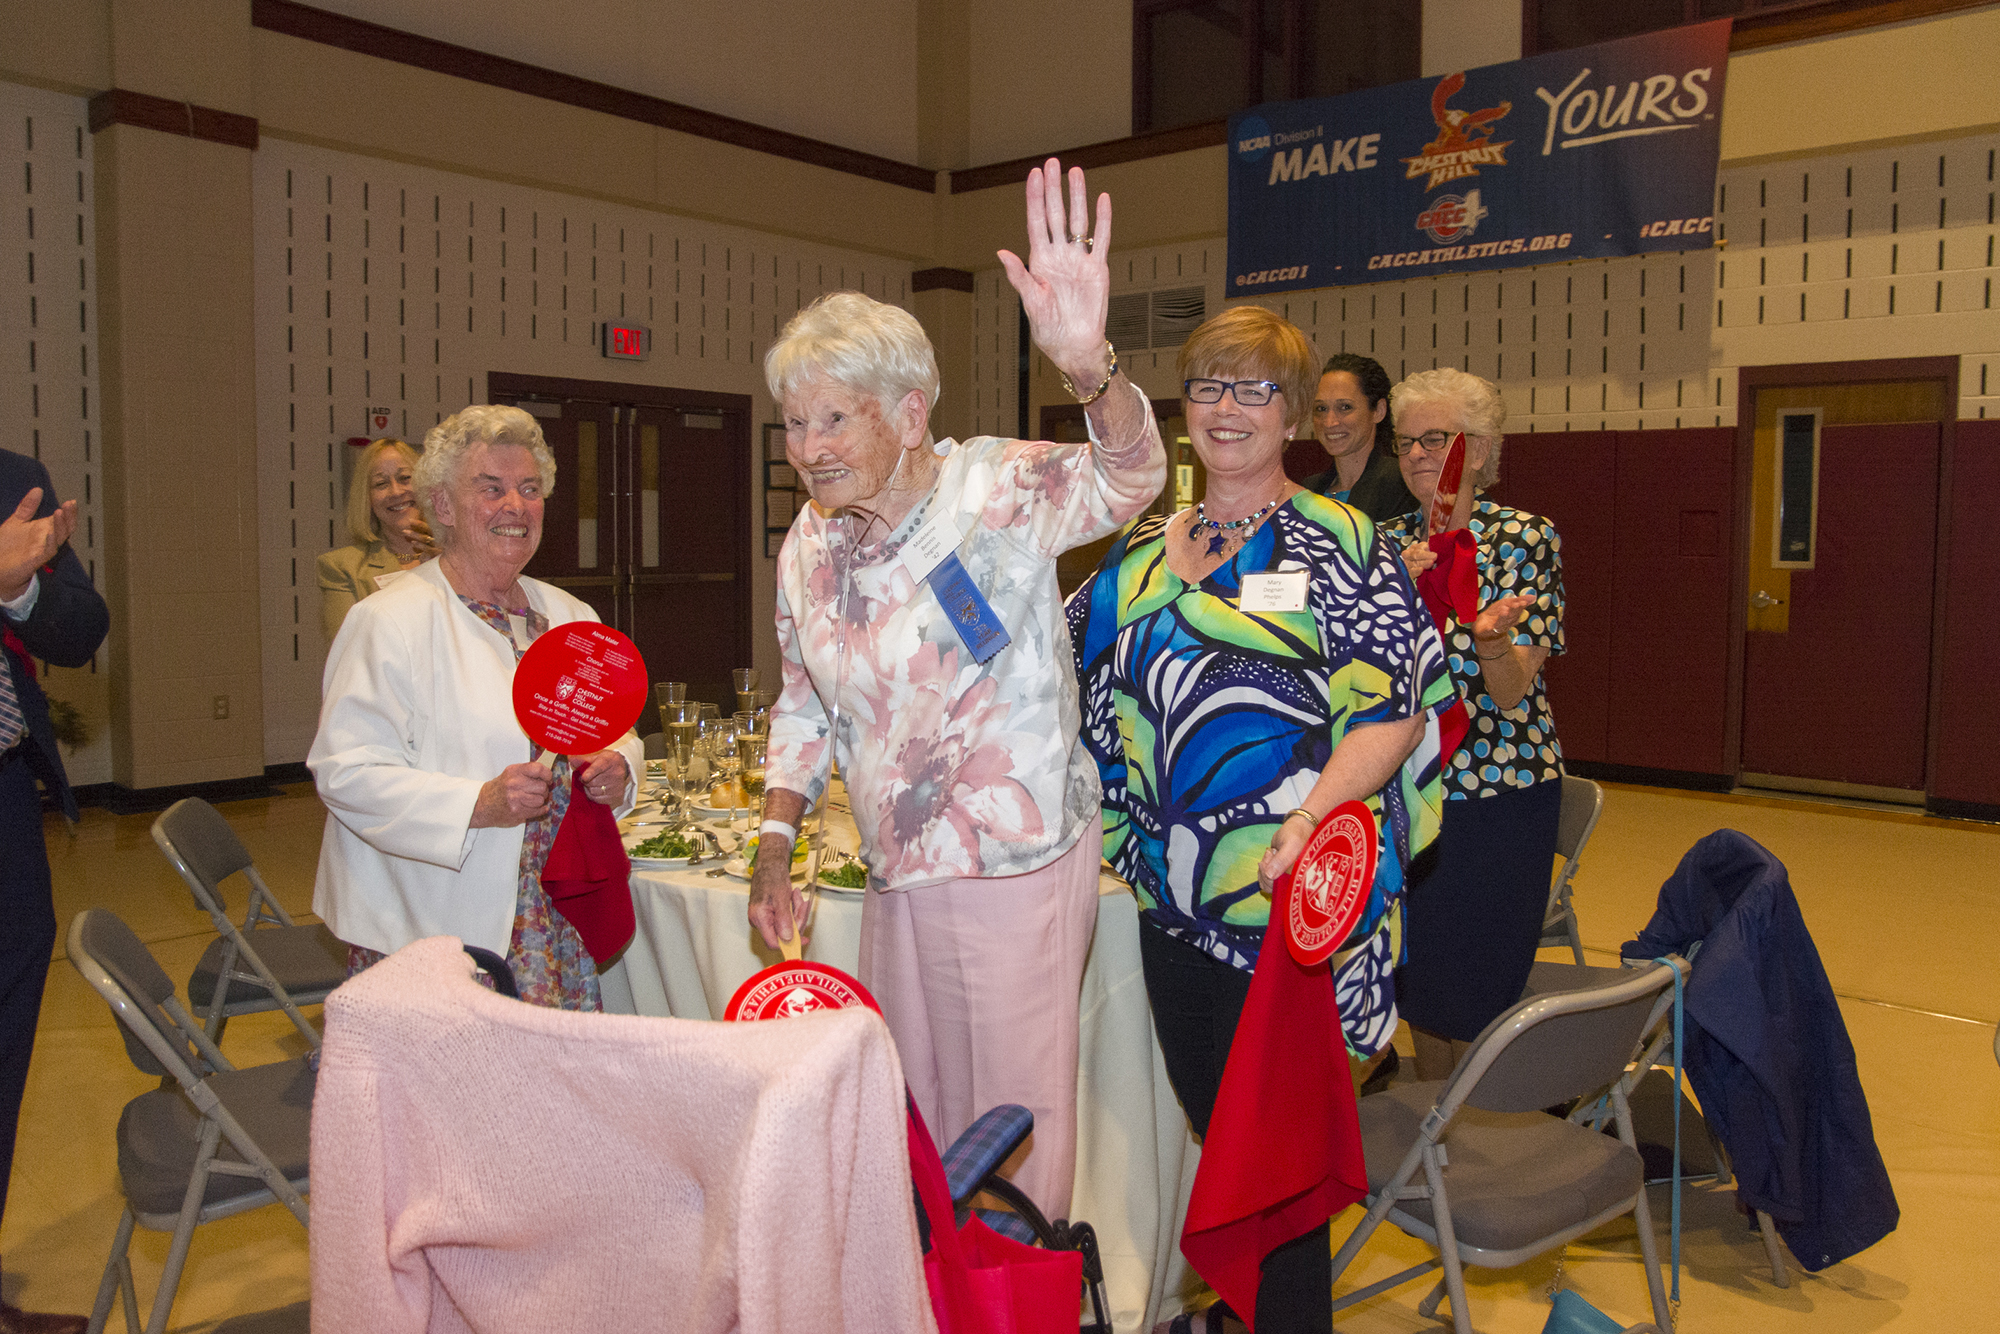 Madeleine Bennis Degnan, Class of 1942, celebrated her 75th class reunion, thanking the crowd with a wave and a smile.